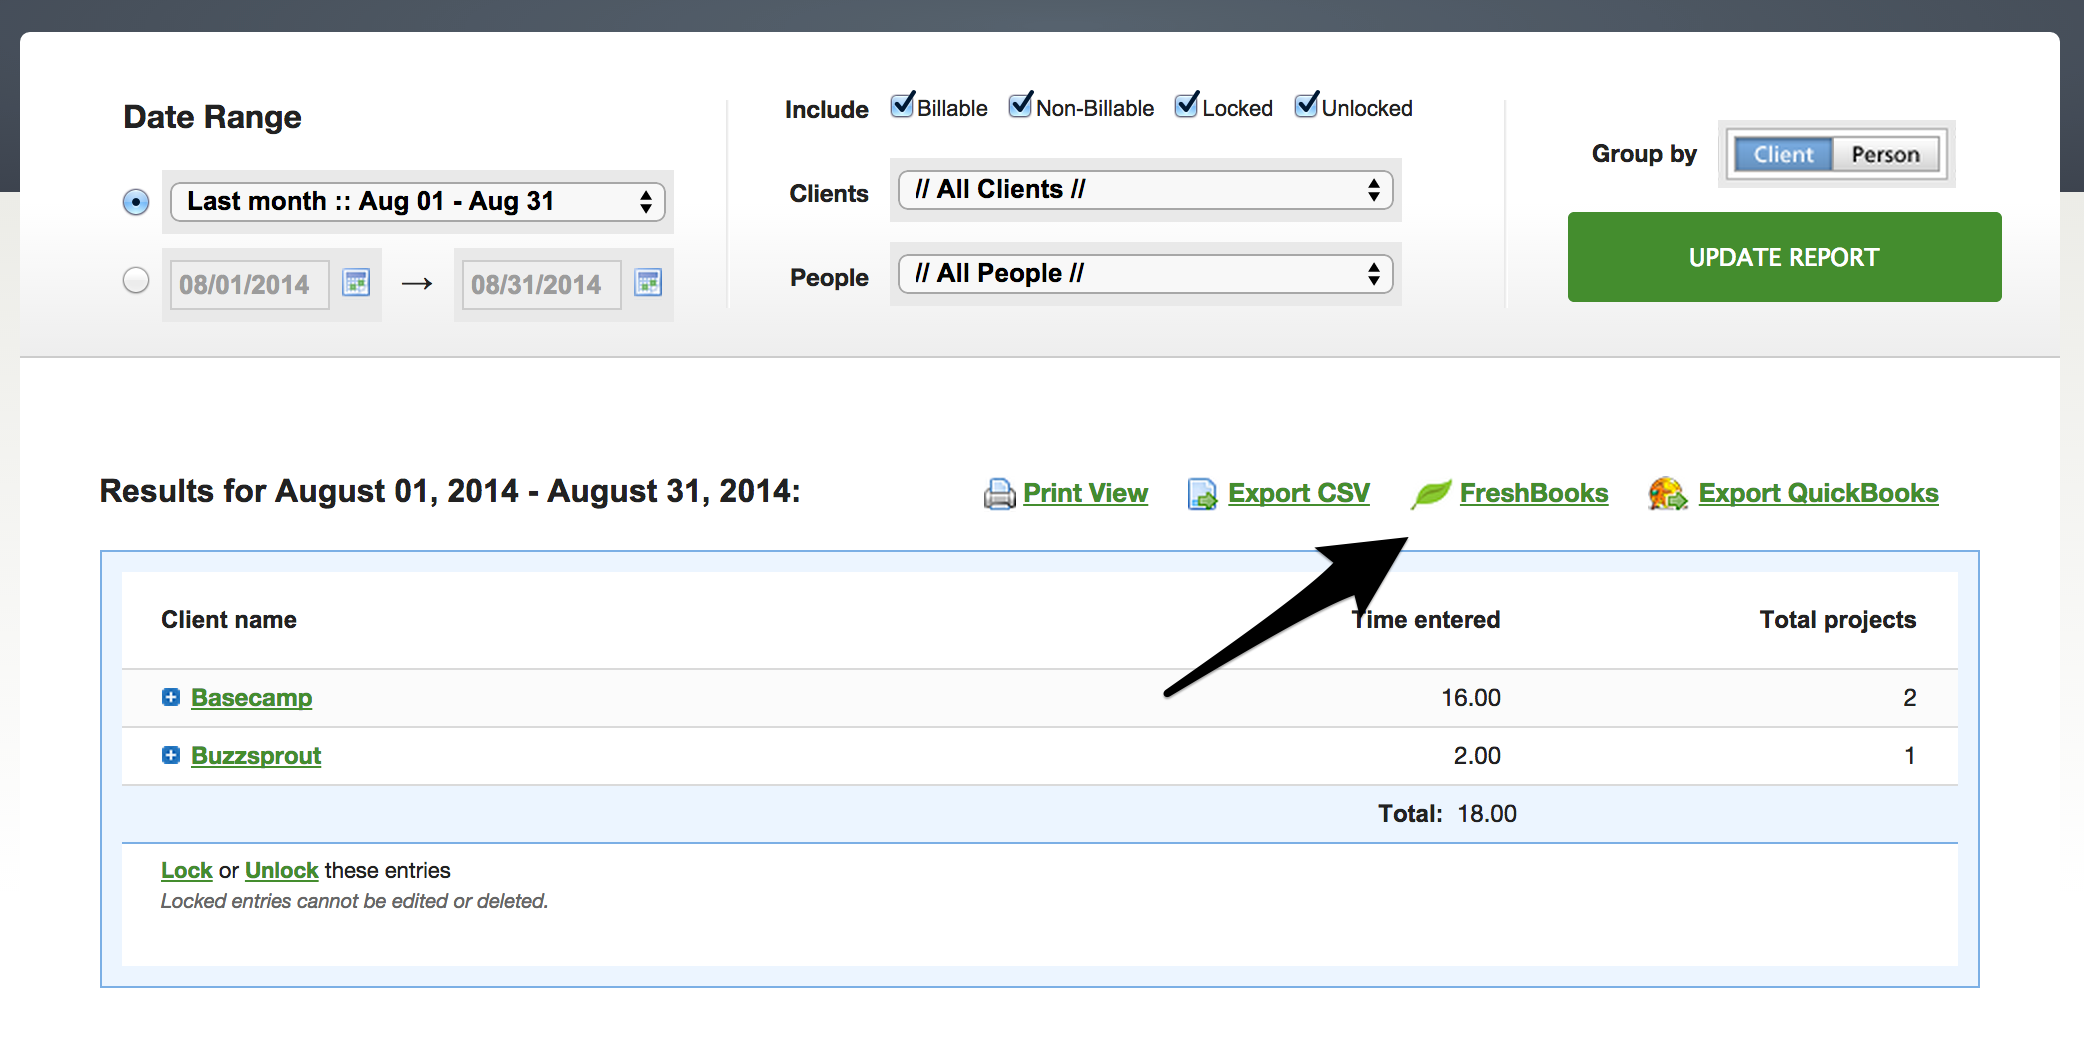 Enable Freshbooks view in reports